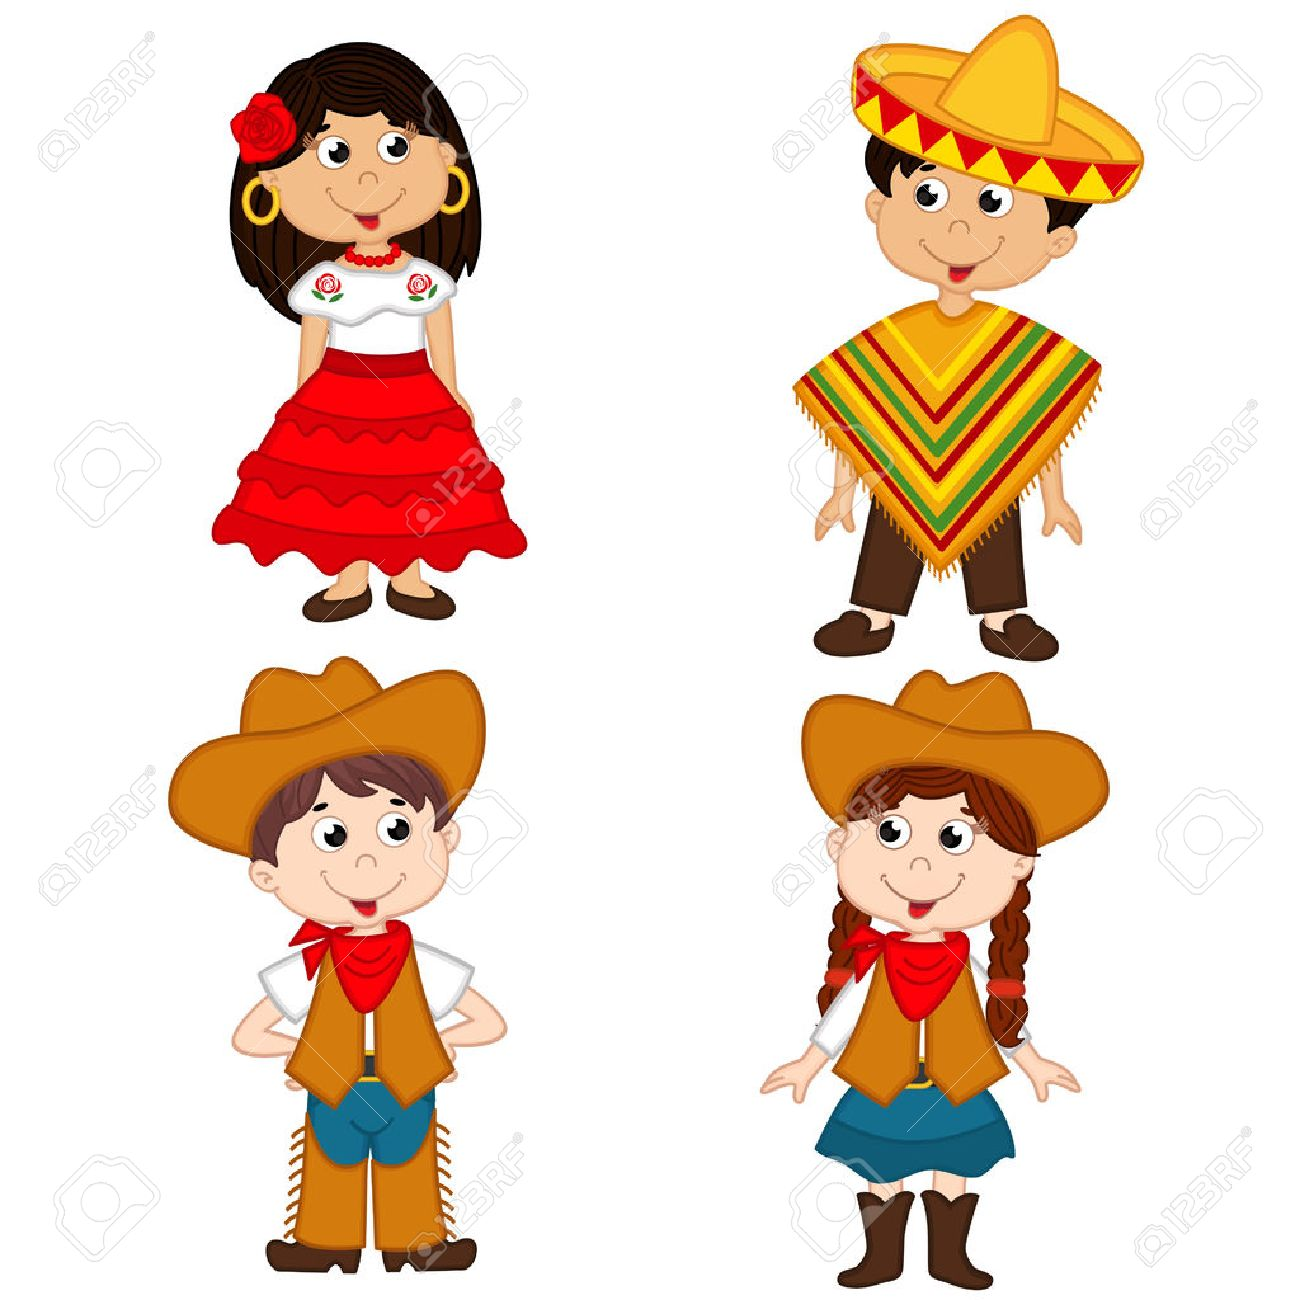 set of isolated children of Mexican and cowboy nationalities Standard-Bild - 52235468